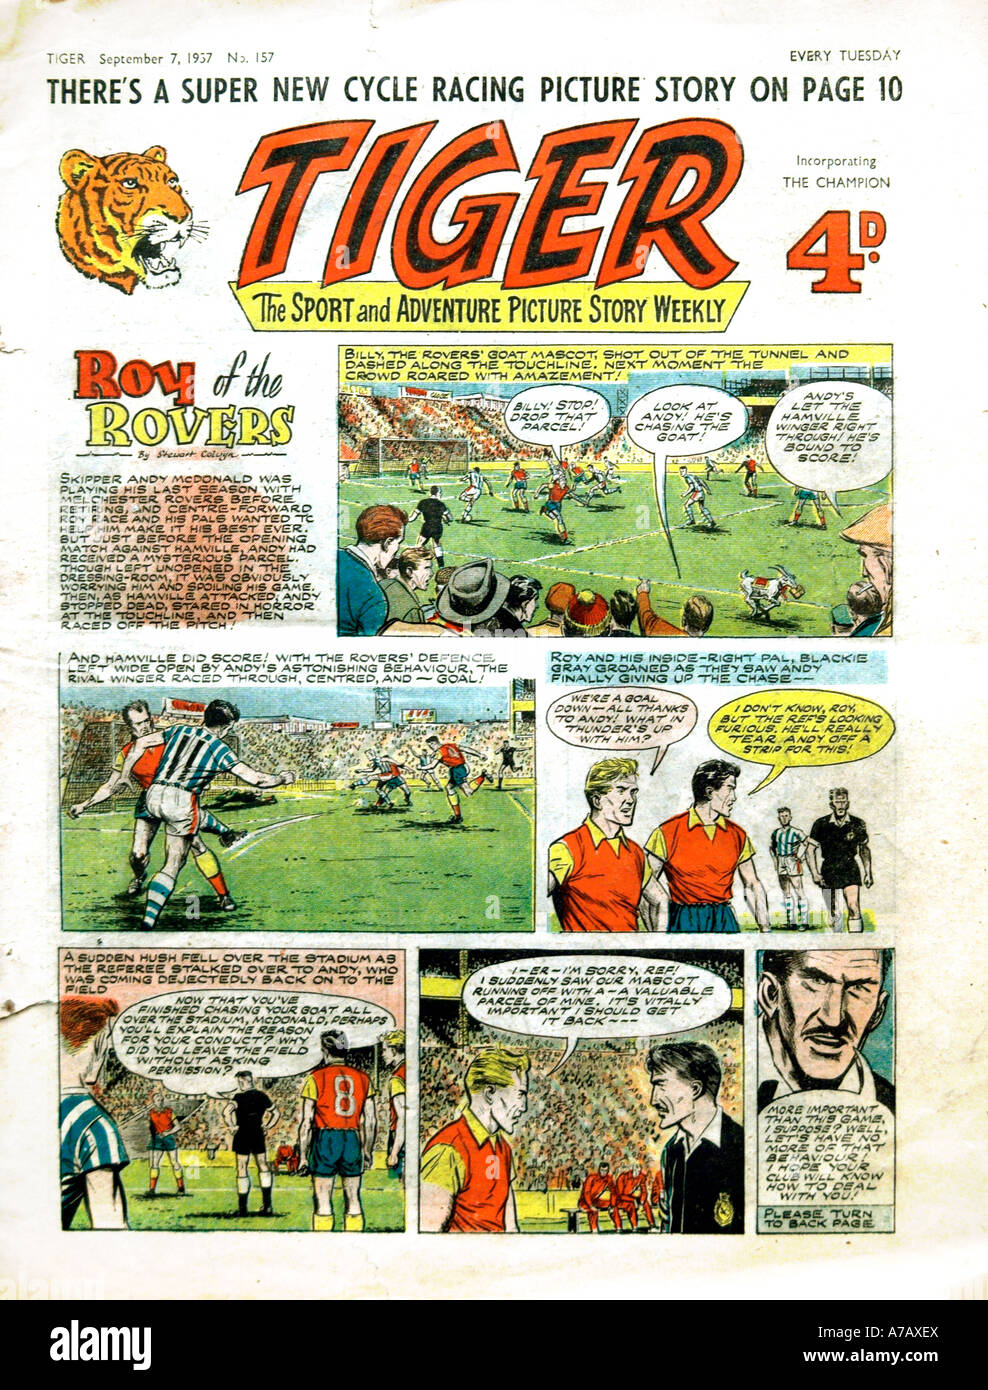 Bande dessinée Roy du tigre Rovers EDITORIAL UTILISEZ UNIQUEMENT Photo Stock